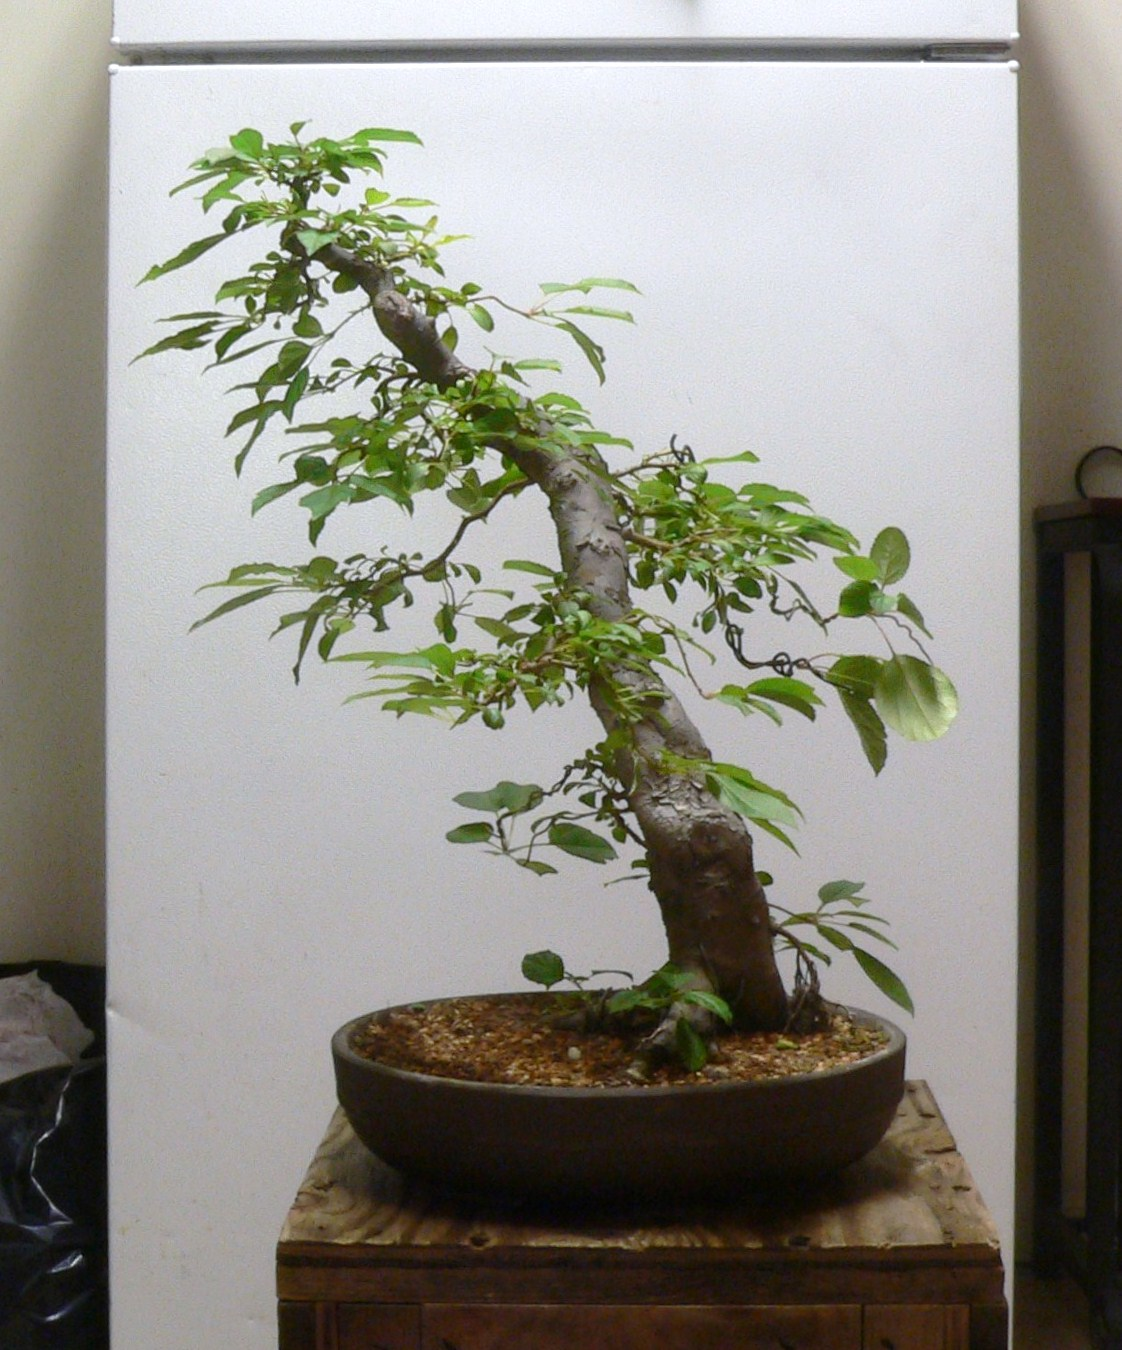 Laser Beam Bonsai Crabapple Bonsai